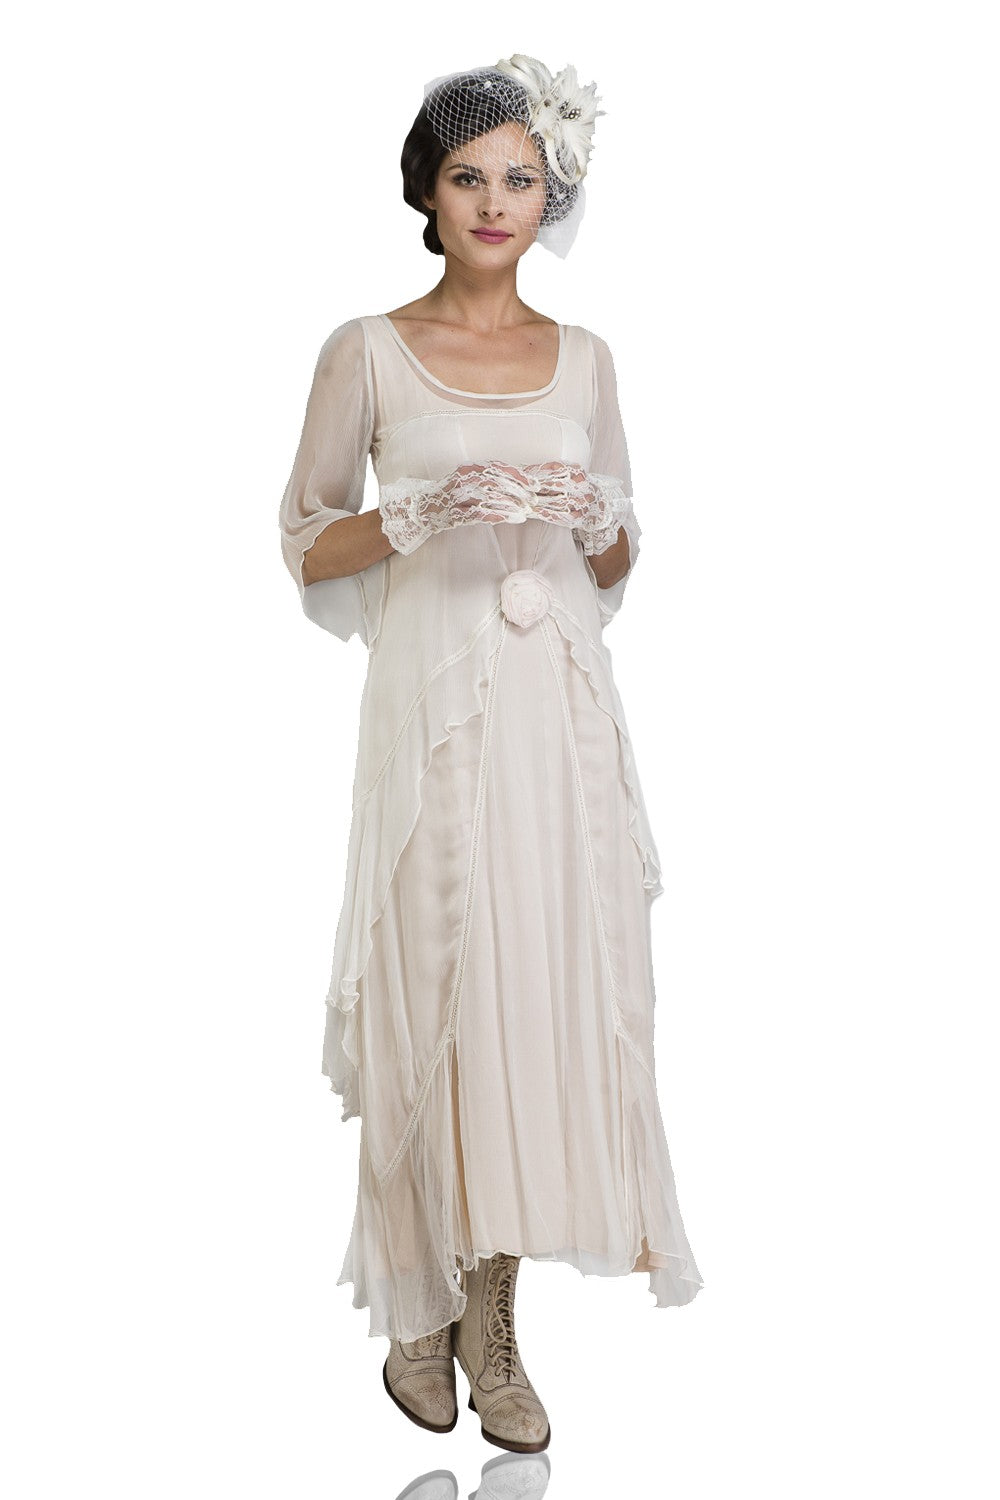 1920s Day Dresses, Tea Dresses, Mature Dresses with Sleeves Great Gatsby Party Dress in Ivory by Nataya $228.00 AT vintagedancer.com